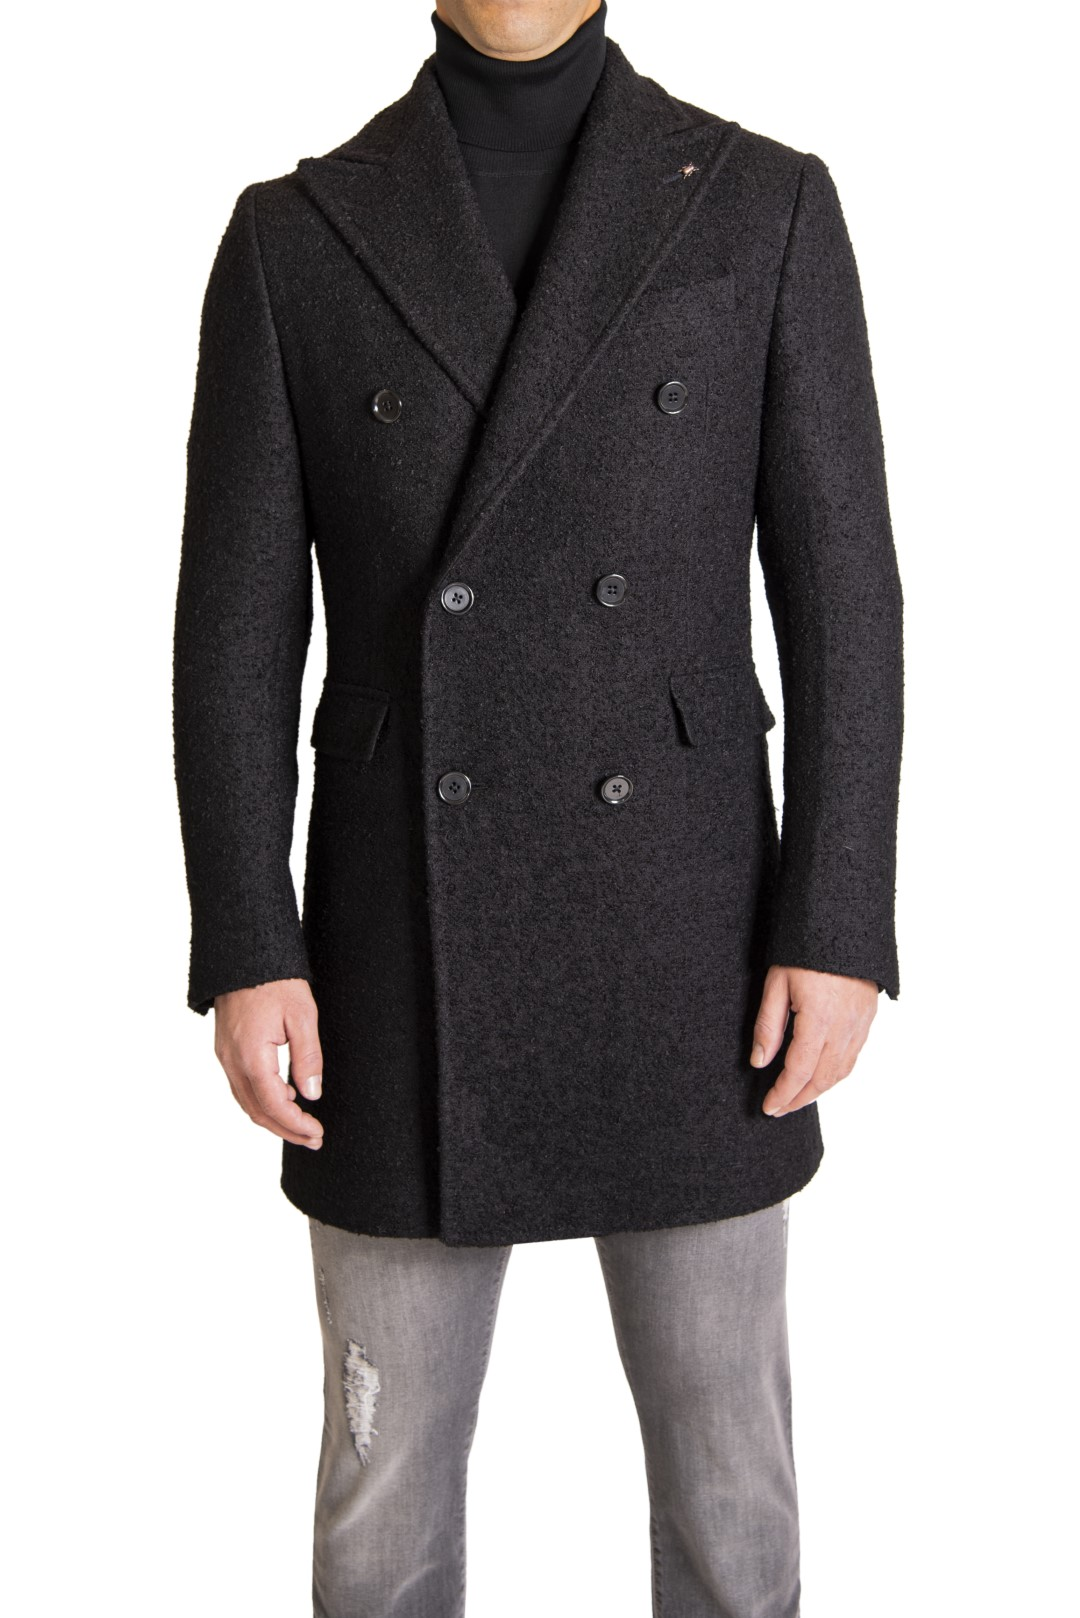 CORTIGIANI OVERCOAT, CC COLLECTION CORNELIANI TROUSER, CORTIGIANI PULLOVER